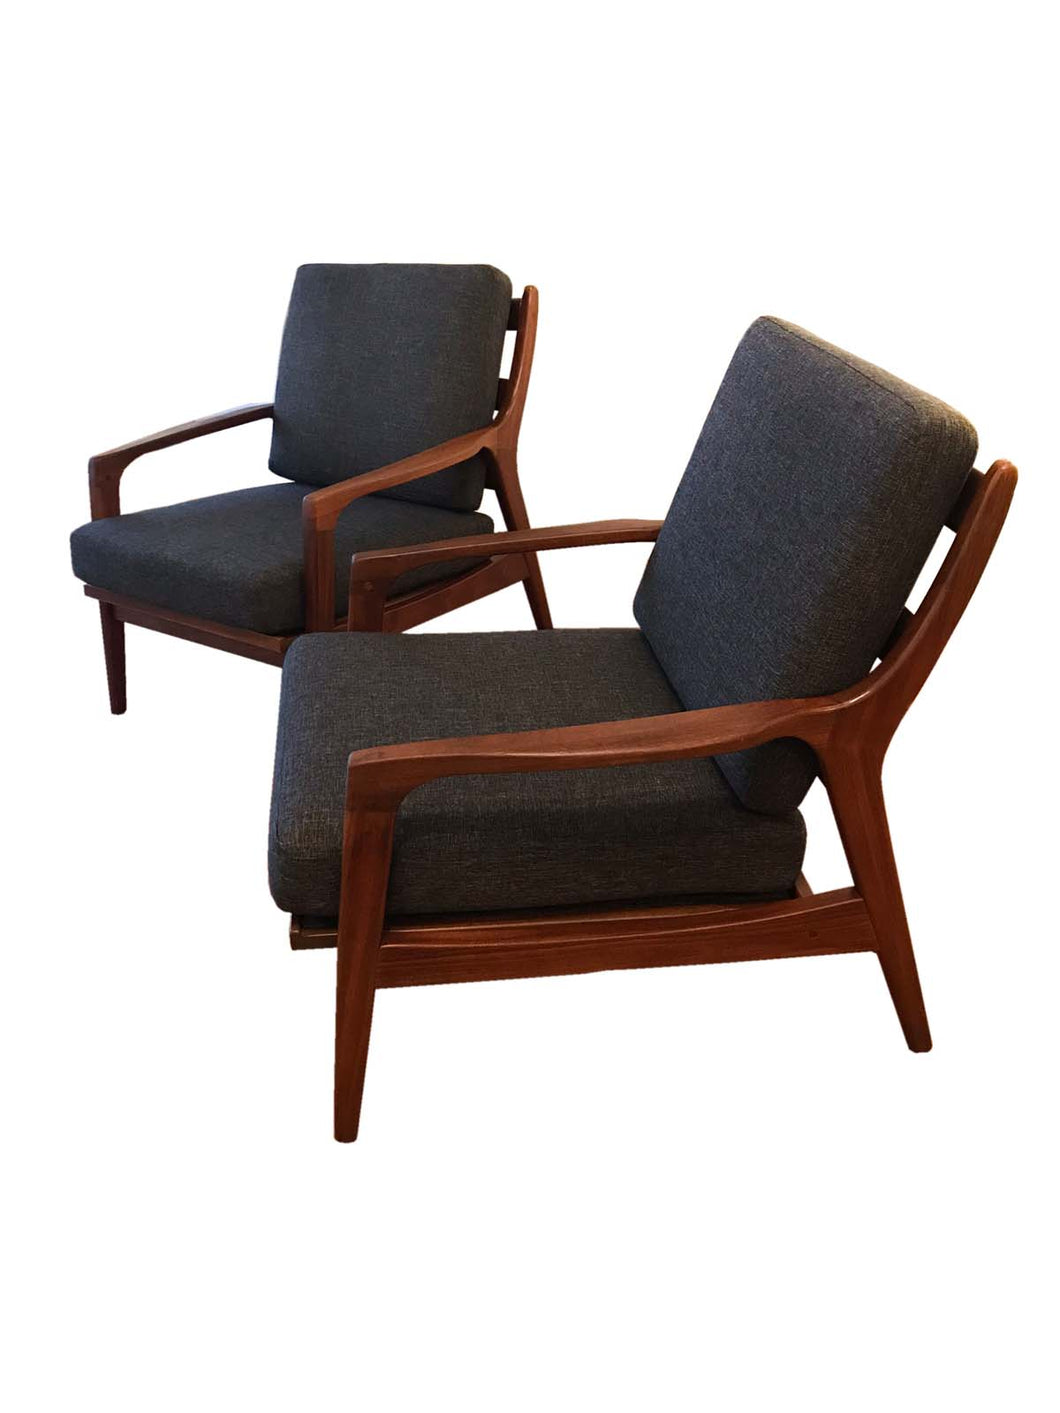 Jan Kyupers Lounge Chairs